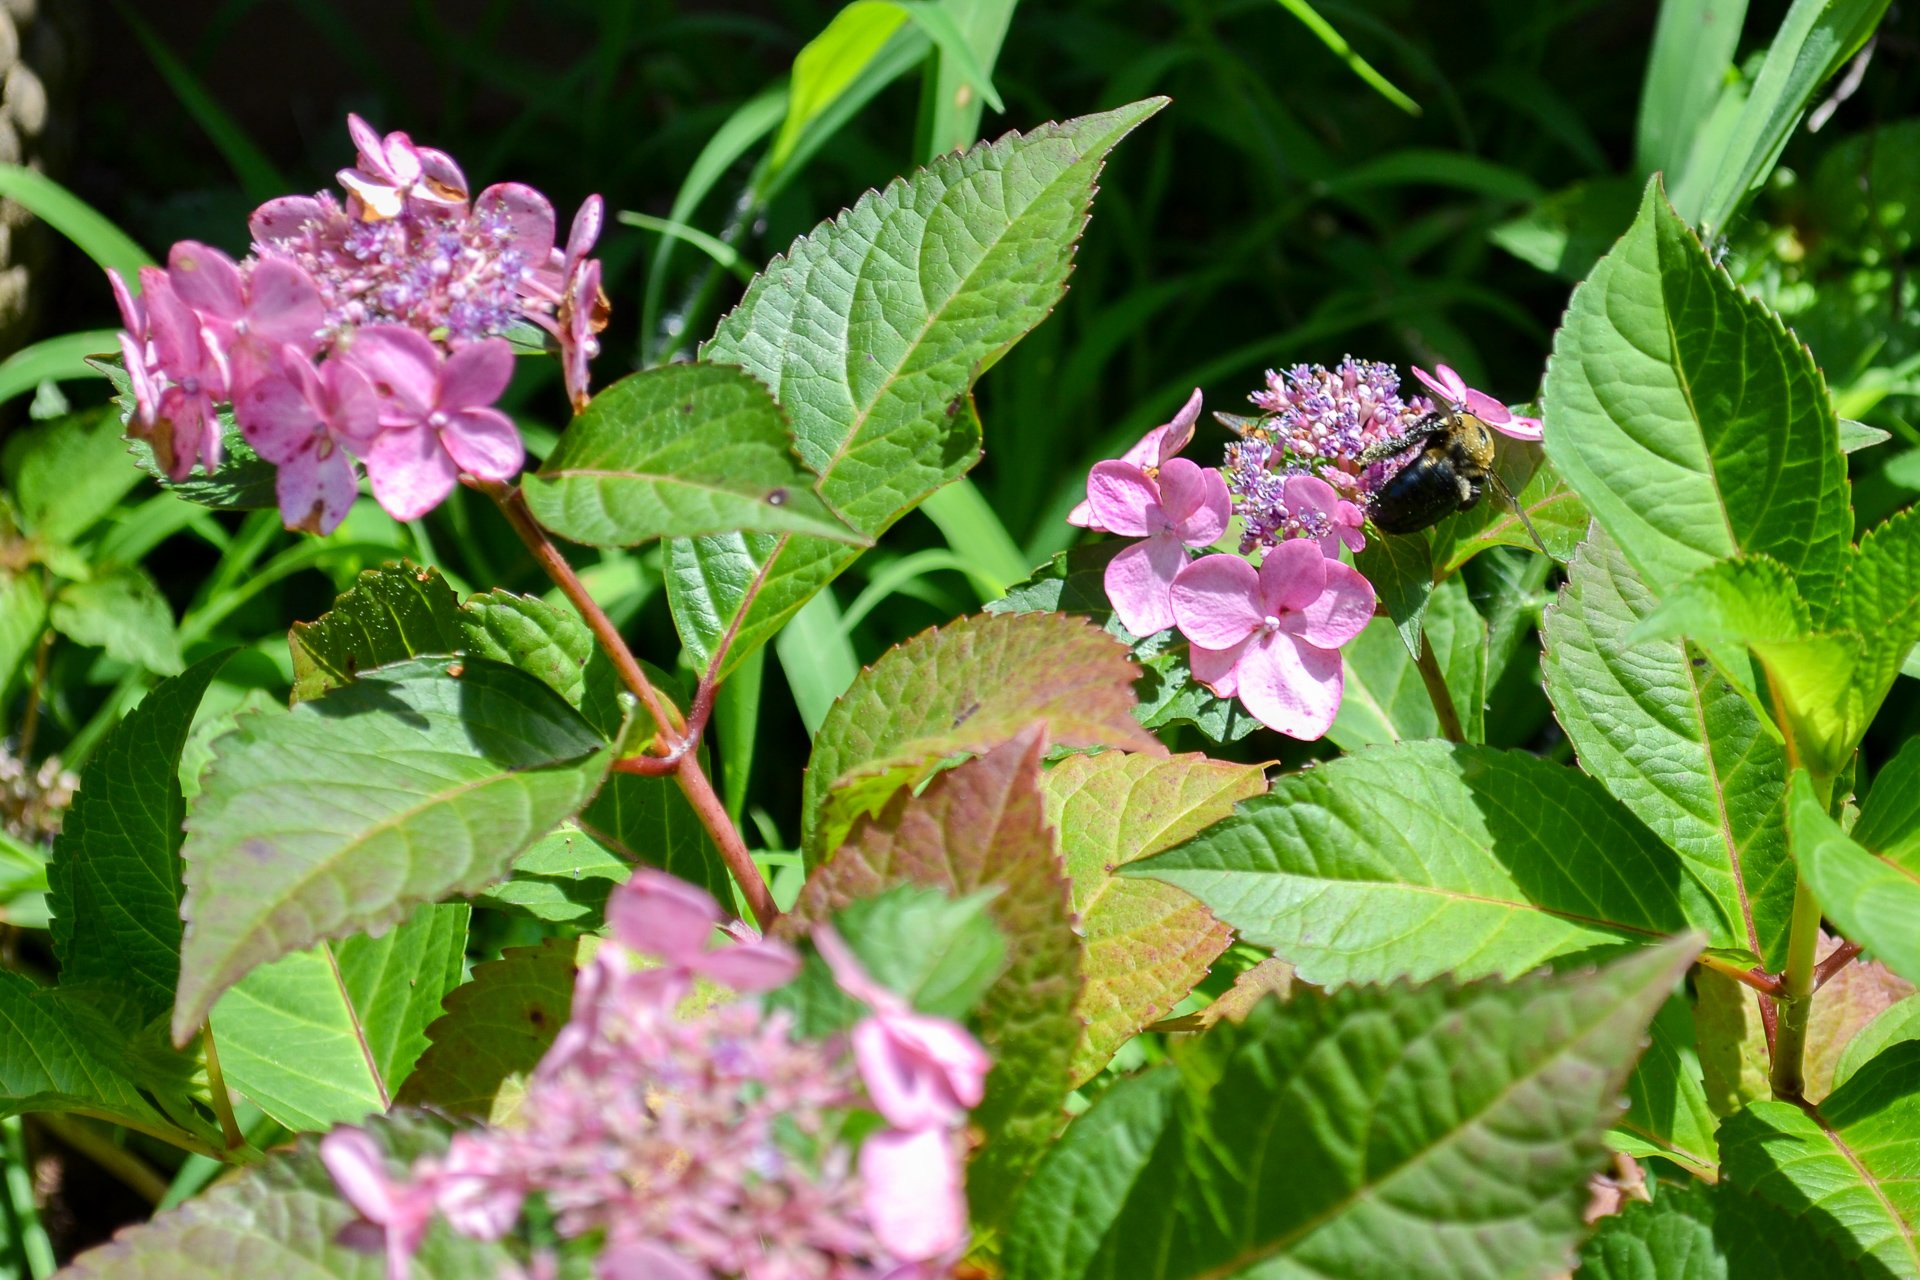 These pink colored Twist 'n' Shout Lacecap Hydrangeas have lacier, less-full blooms than other hydrangea types.